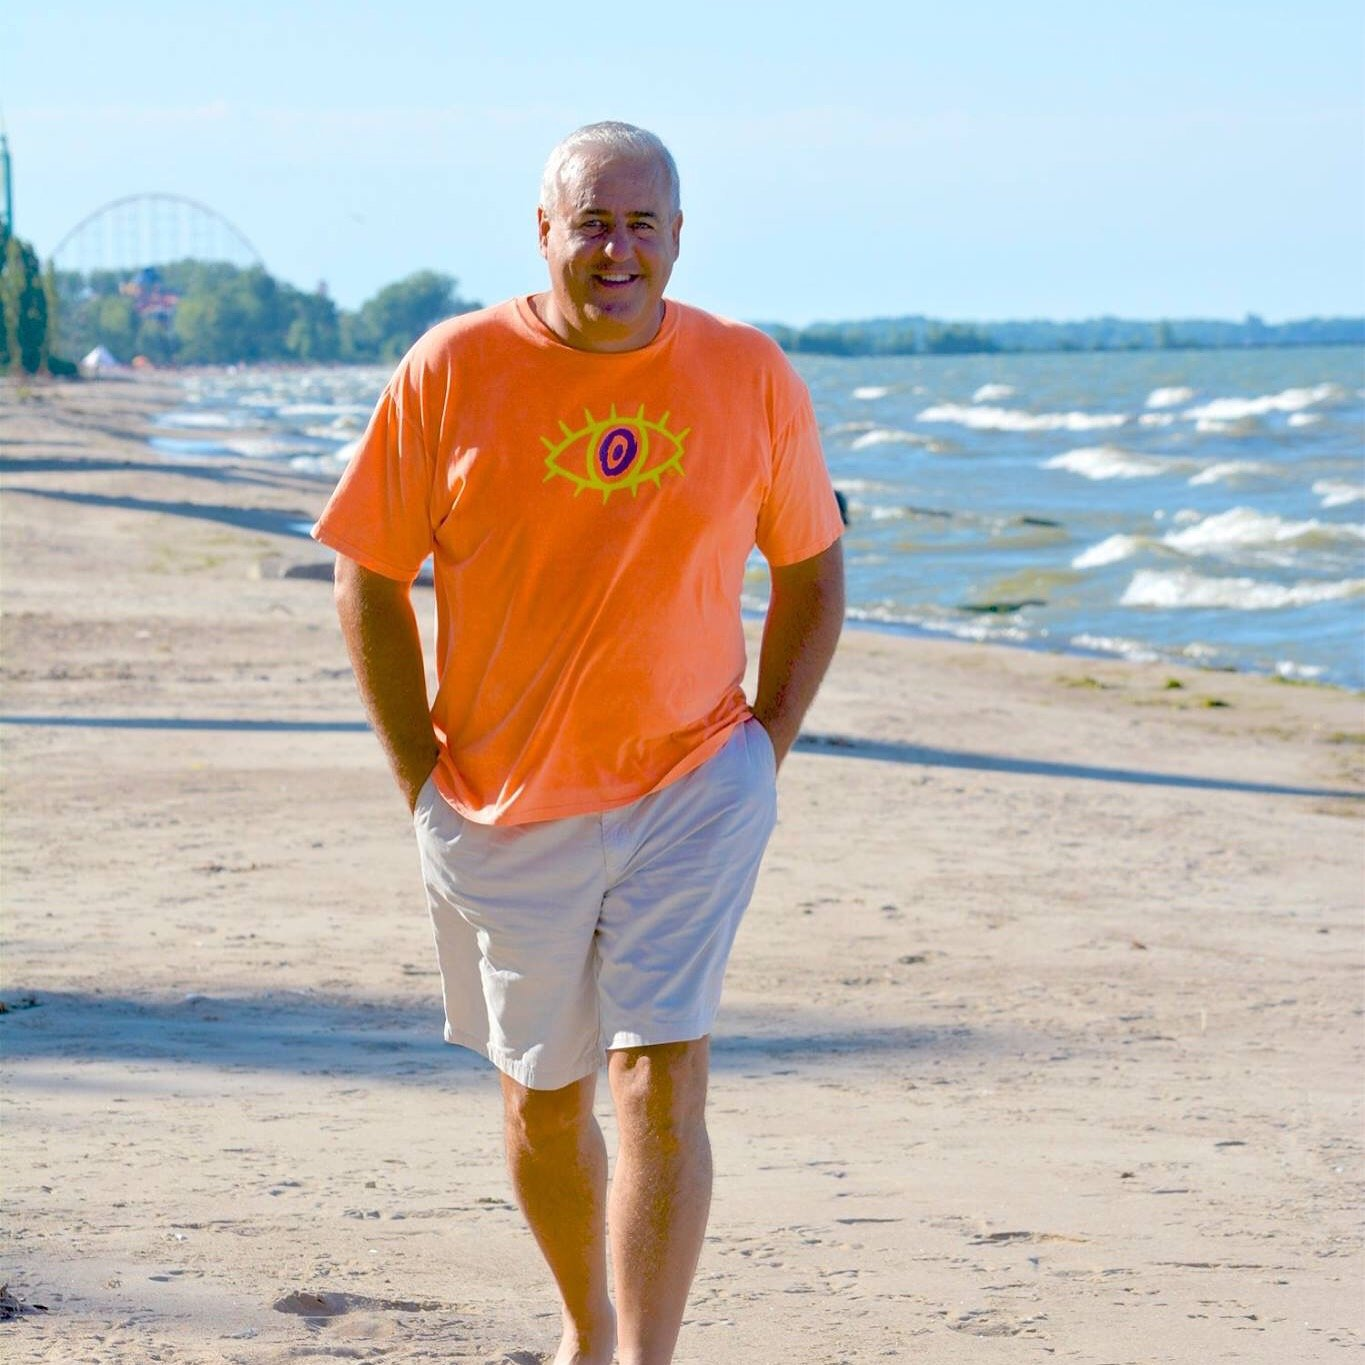 Bryan returned to Sandusky, Ohio for pulmonary embolism treatment.